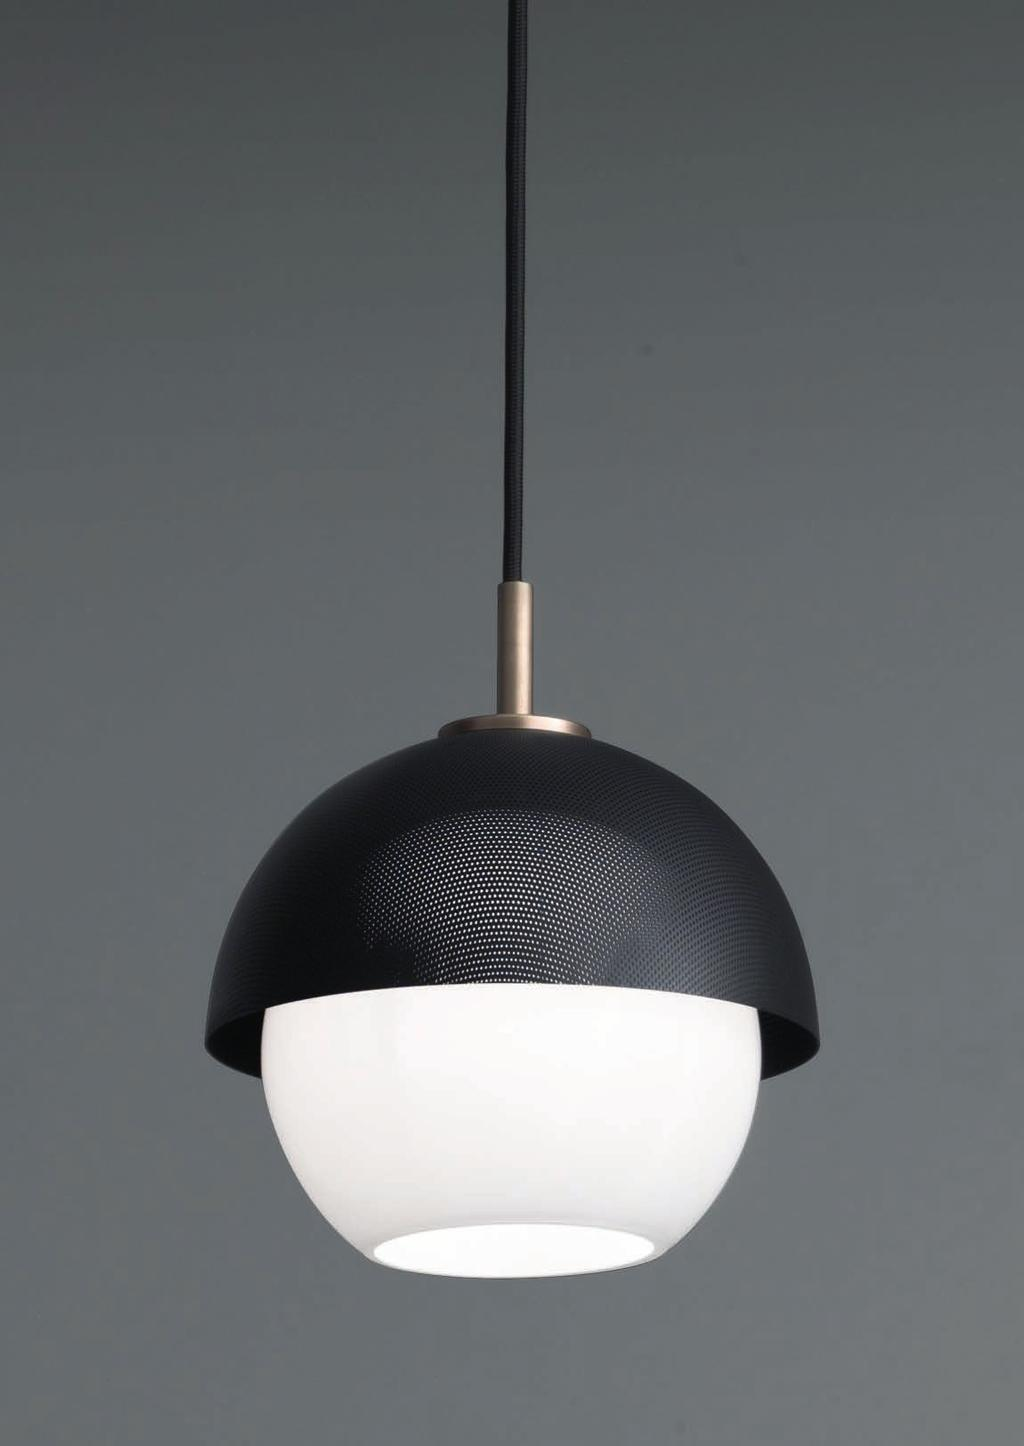 URBAN SUSPENSION 1 50cm-19 Ø 20cm-7 8 Suspended lamp with diffuse light and white, tobacco or smoke Murano blown glass diffuser.